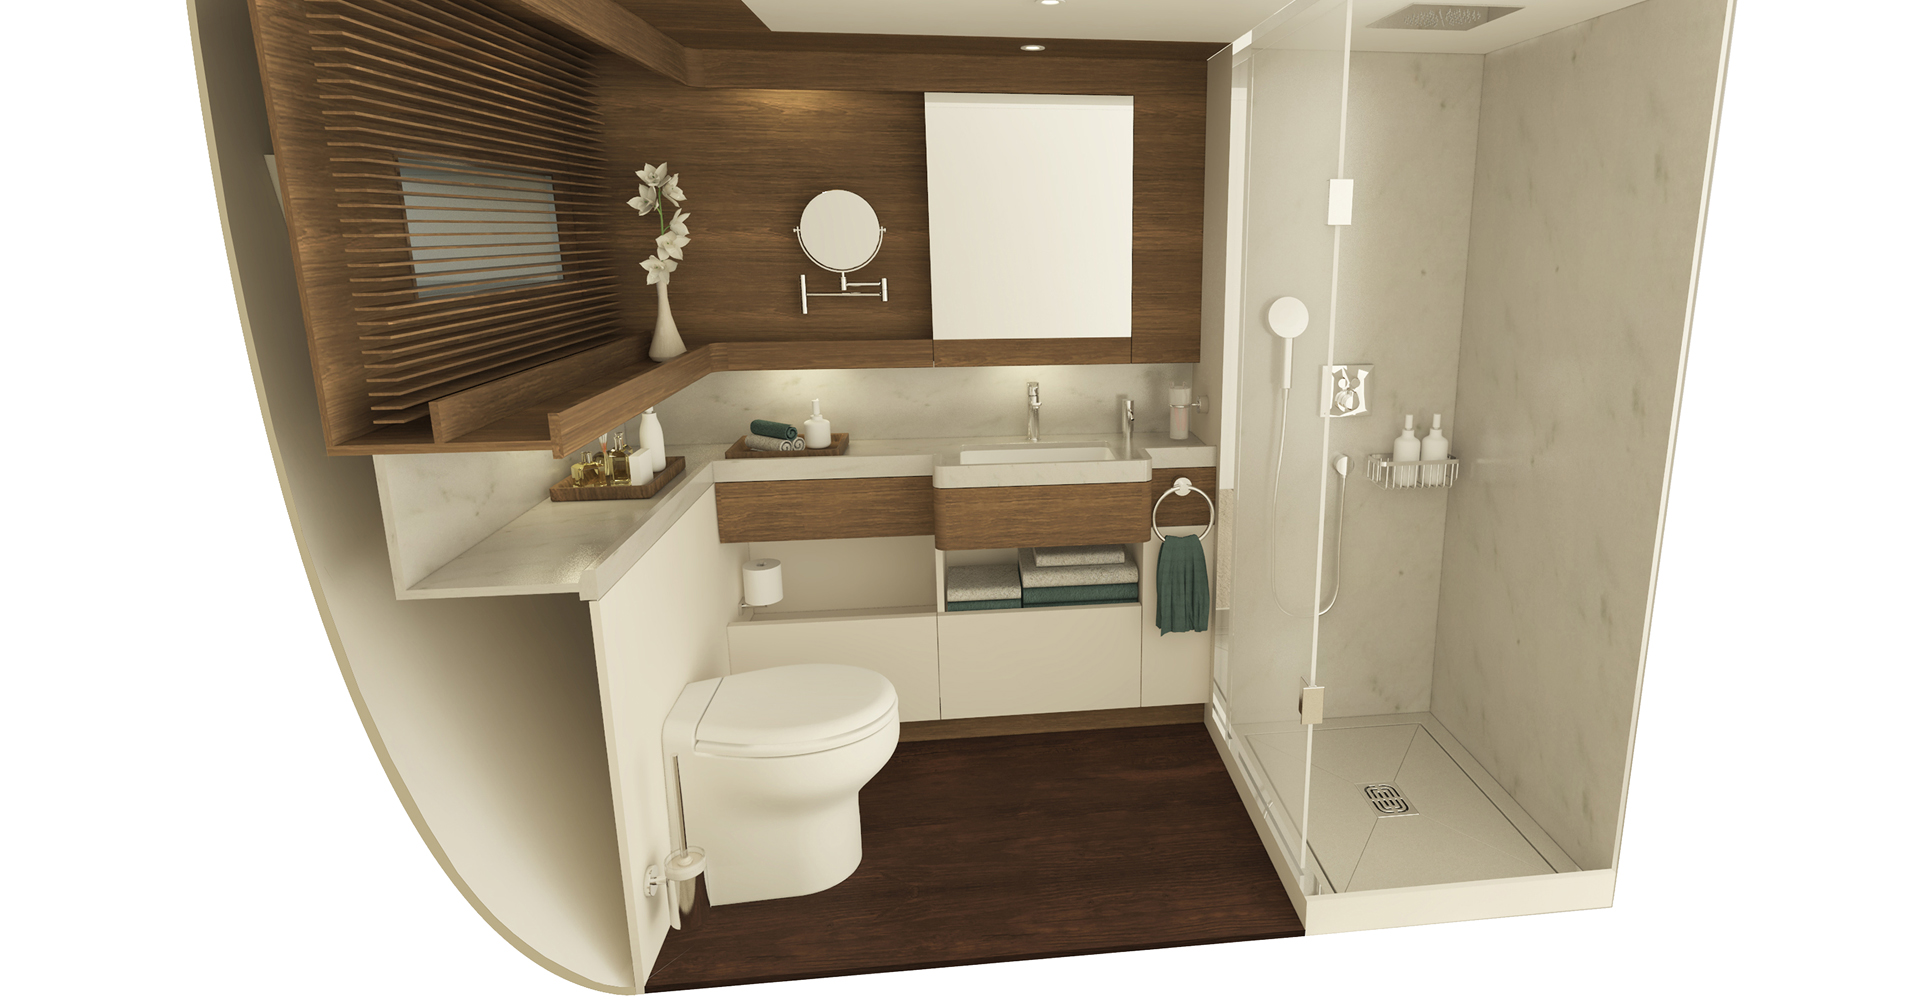 Bathroom for a small space